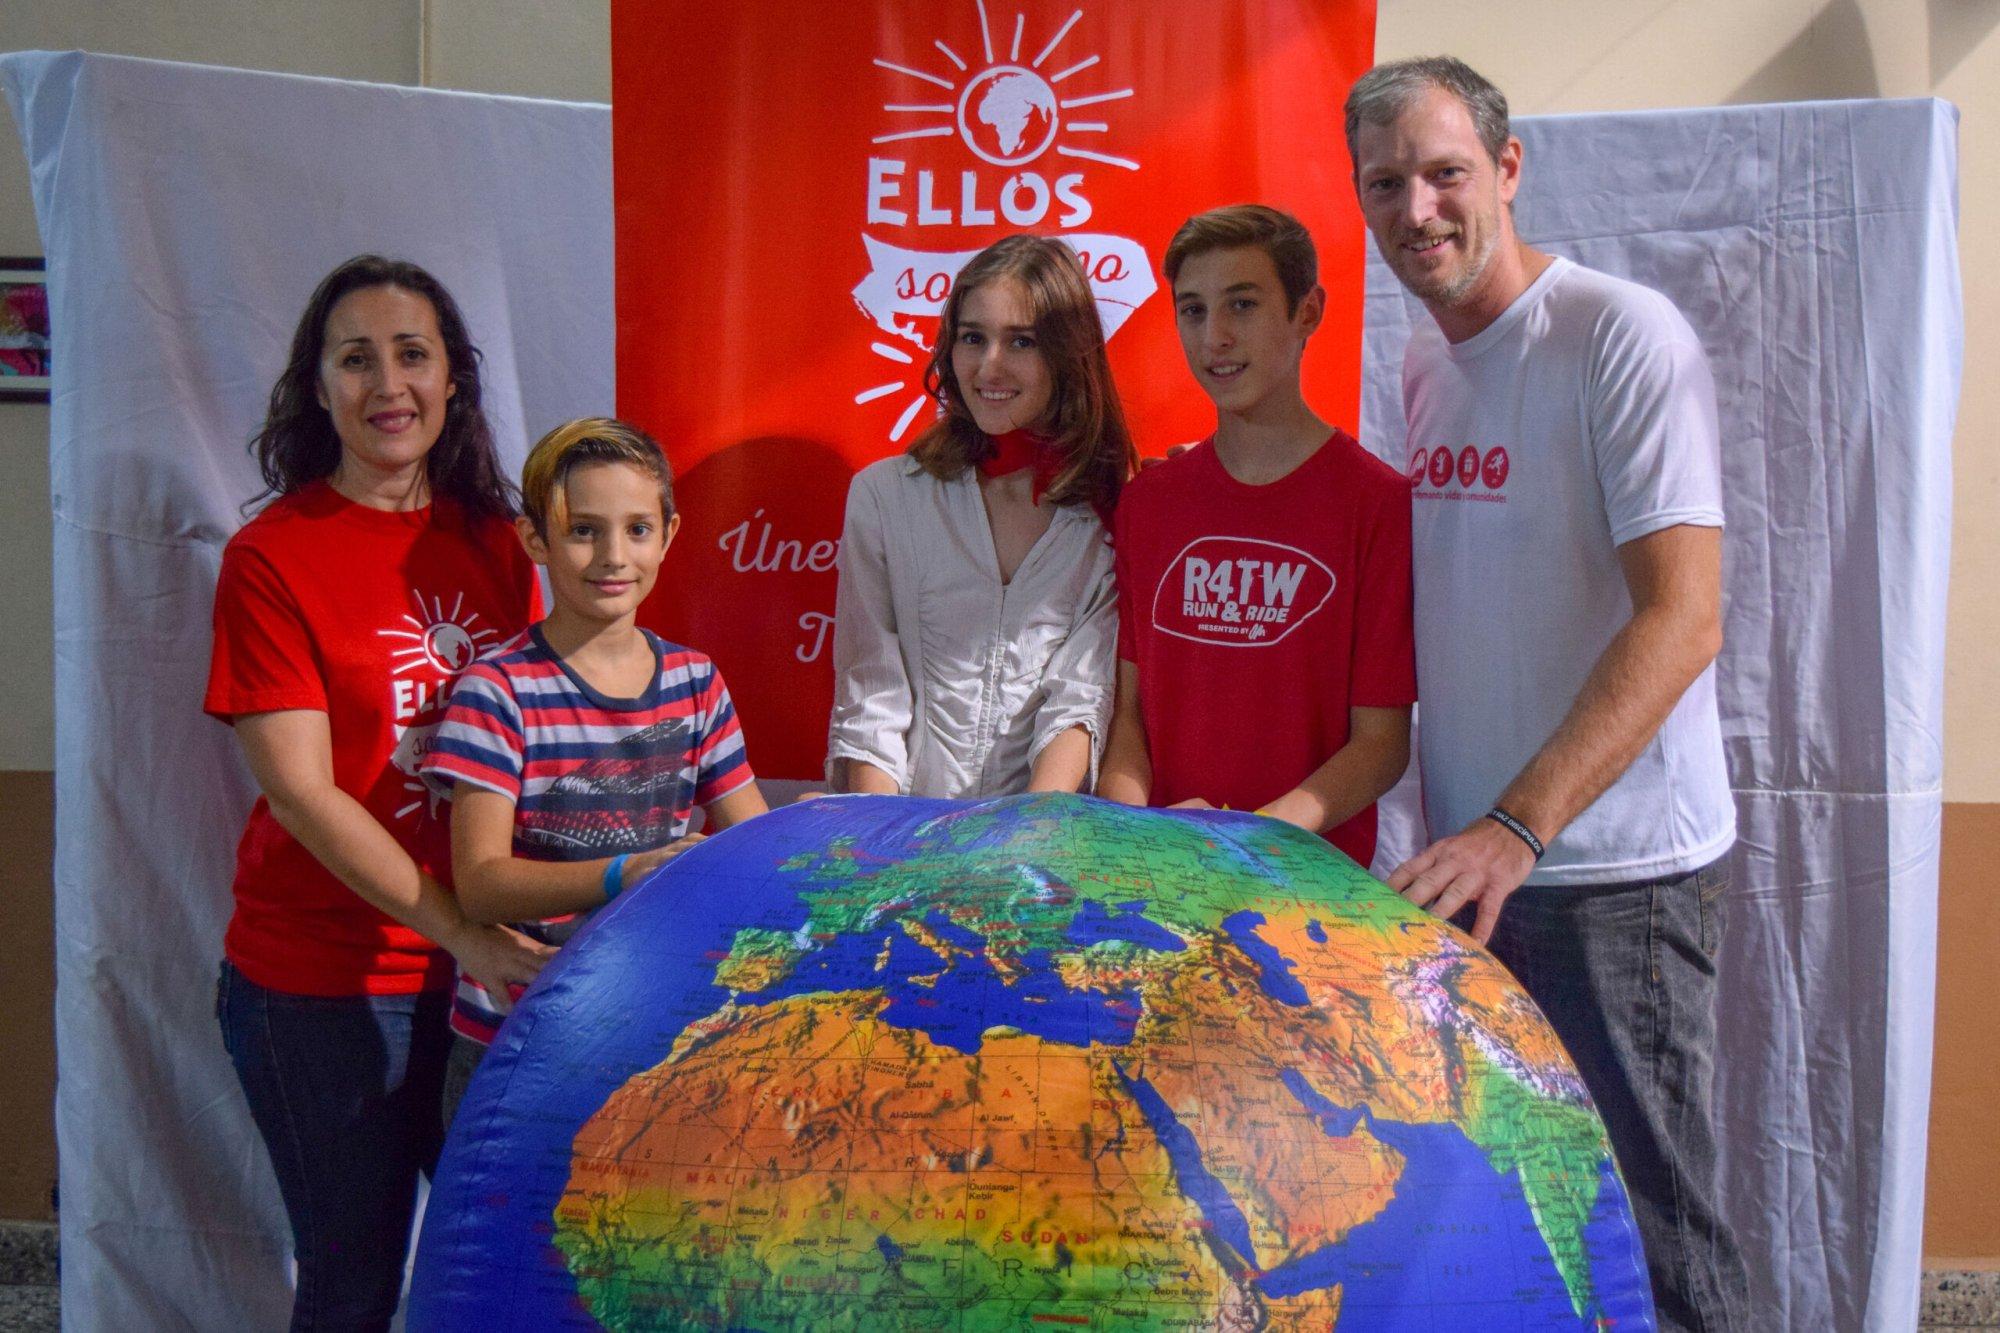 Argentina: Markus Leder and family. Photo by Kate Toretti. More Info